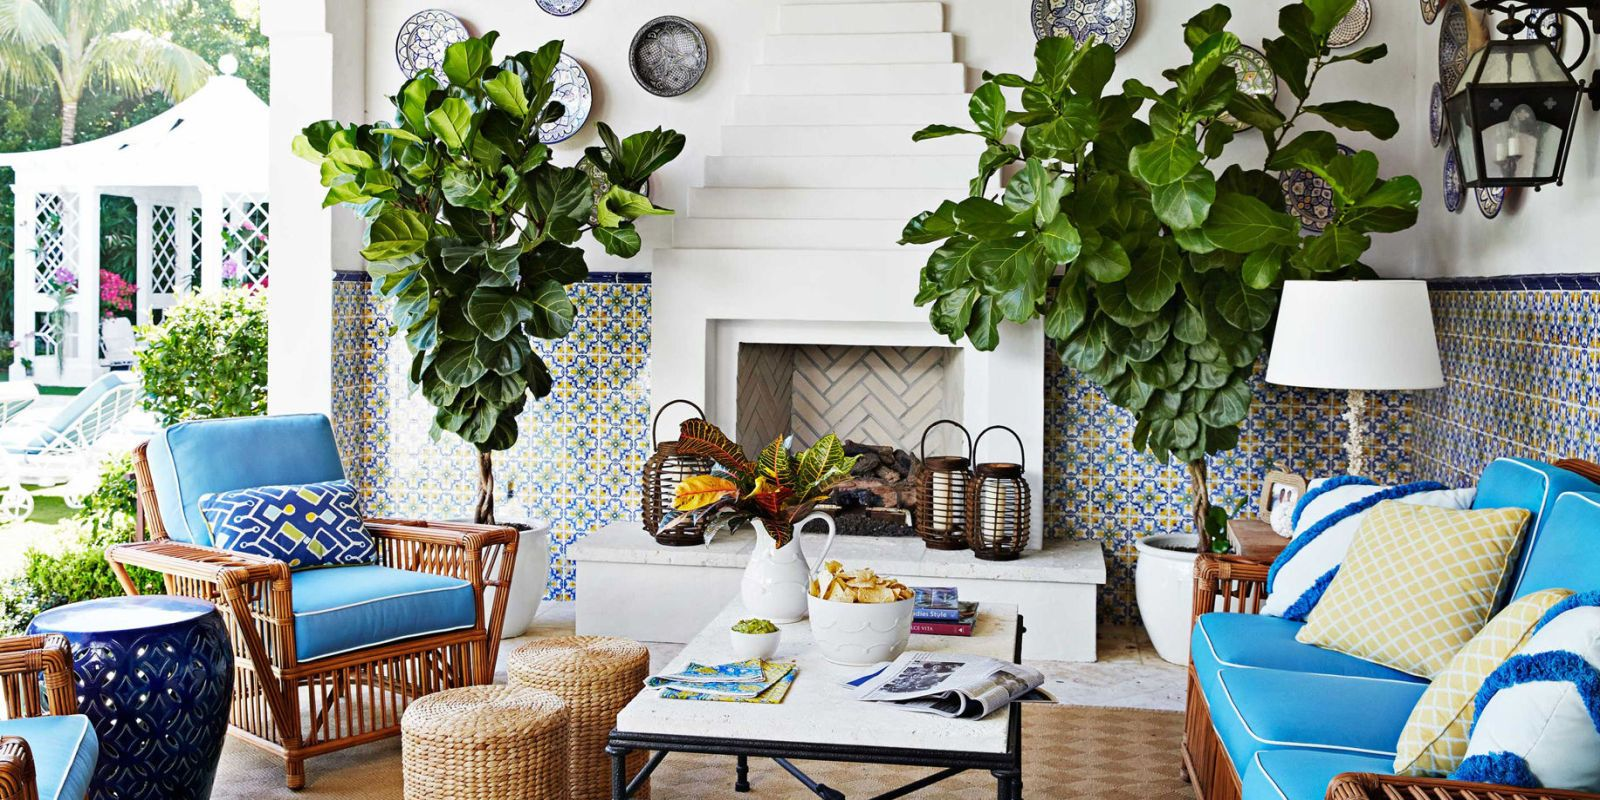 Summer House Decor 2017 Tips for Summer Home Decorating